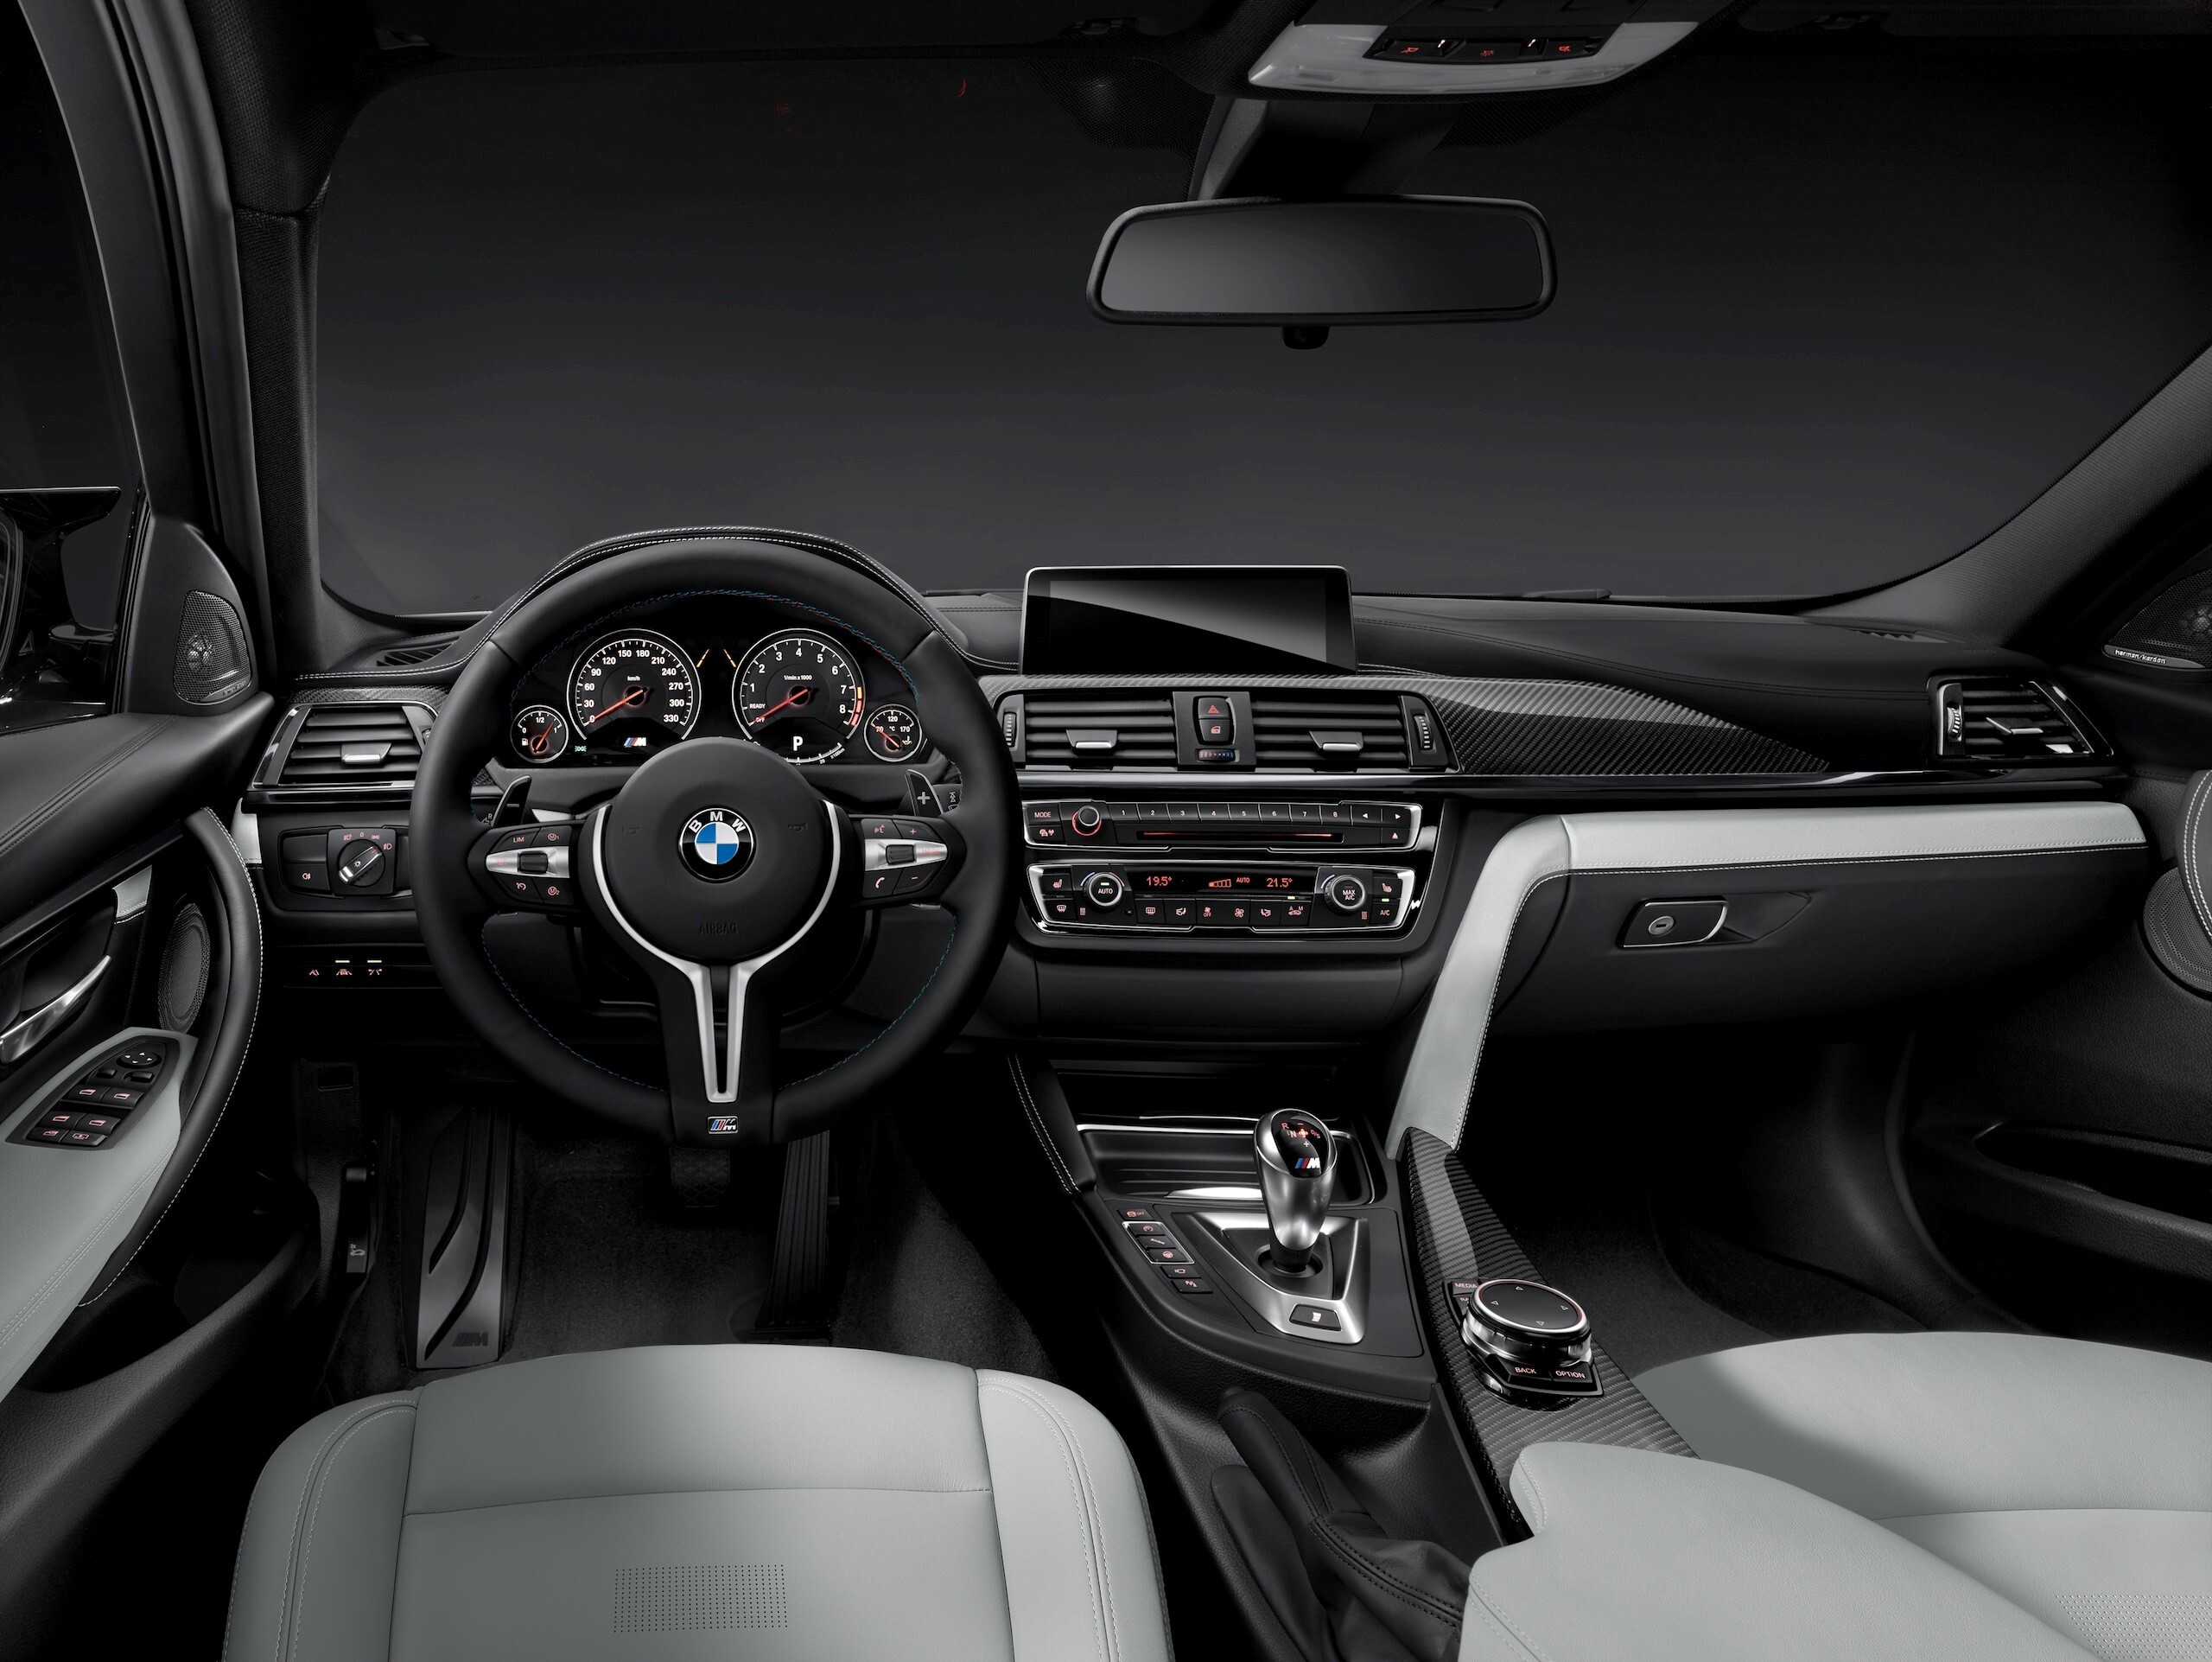 2015 Bmw M3 Cars Interior Nice Wallpaper Download Hd